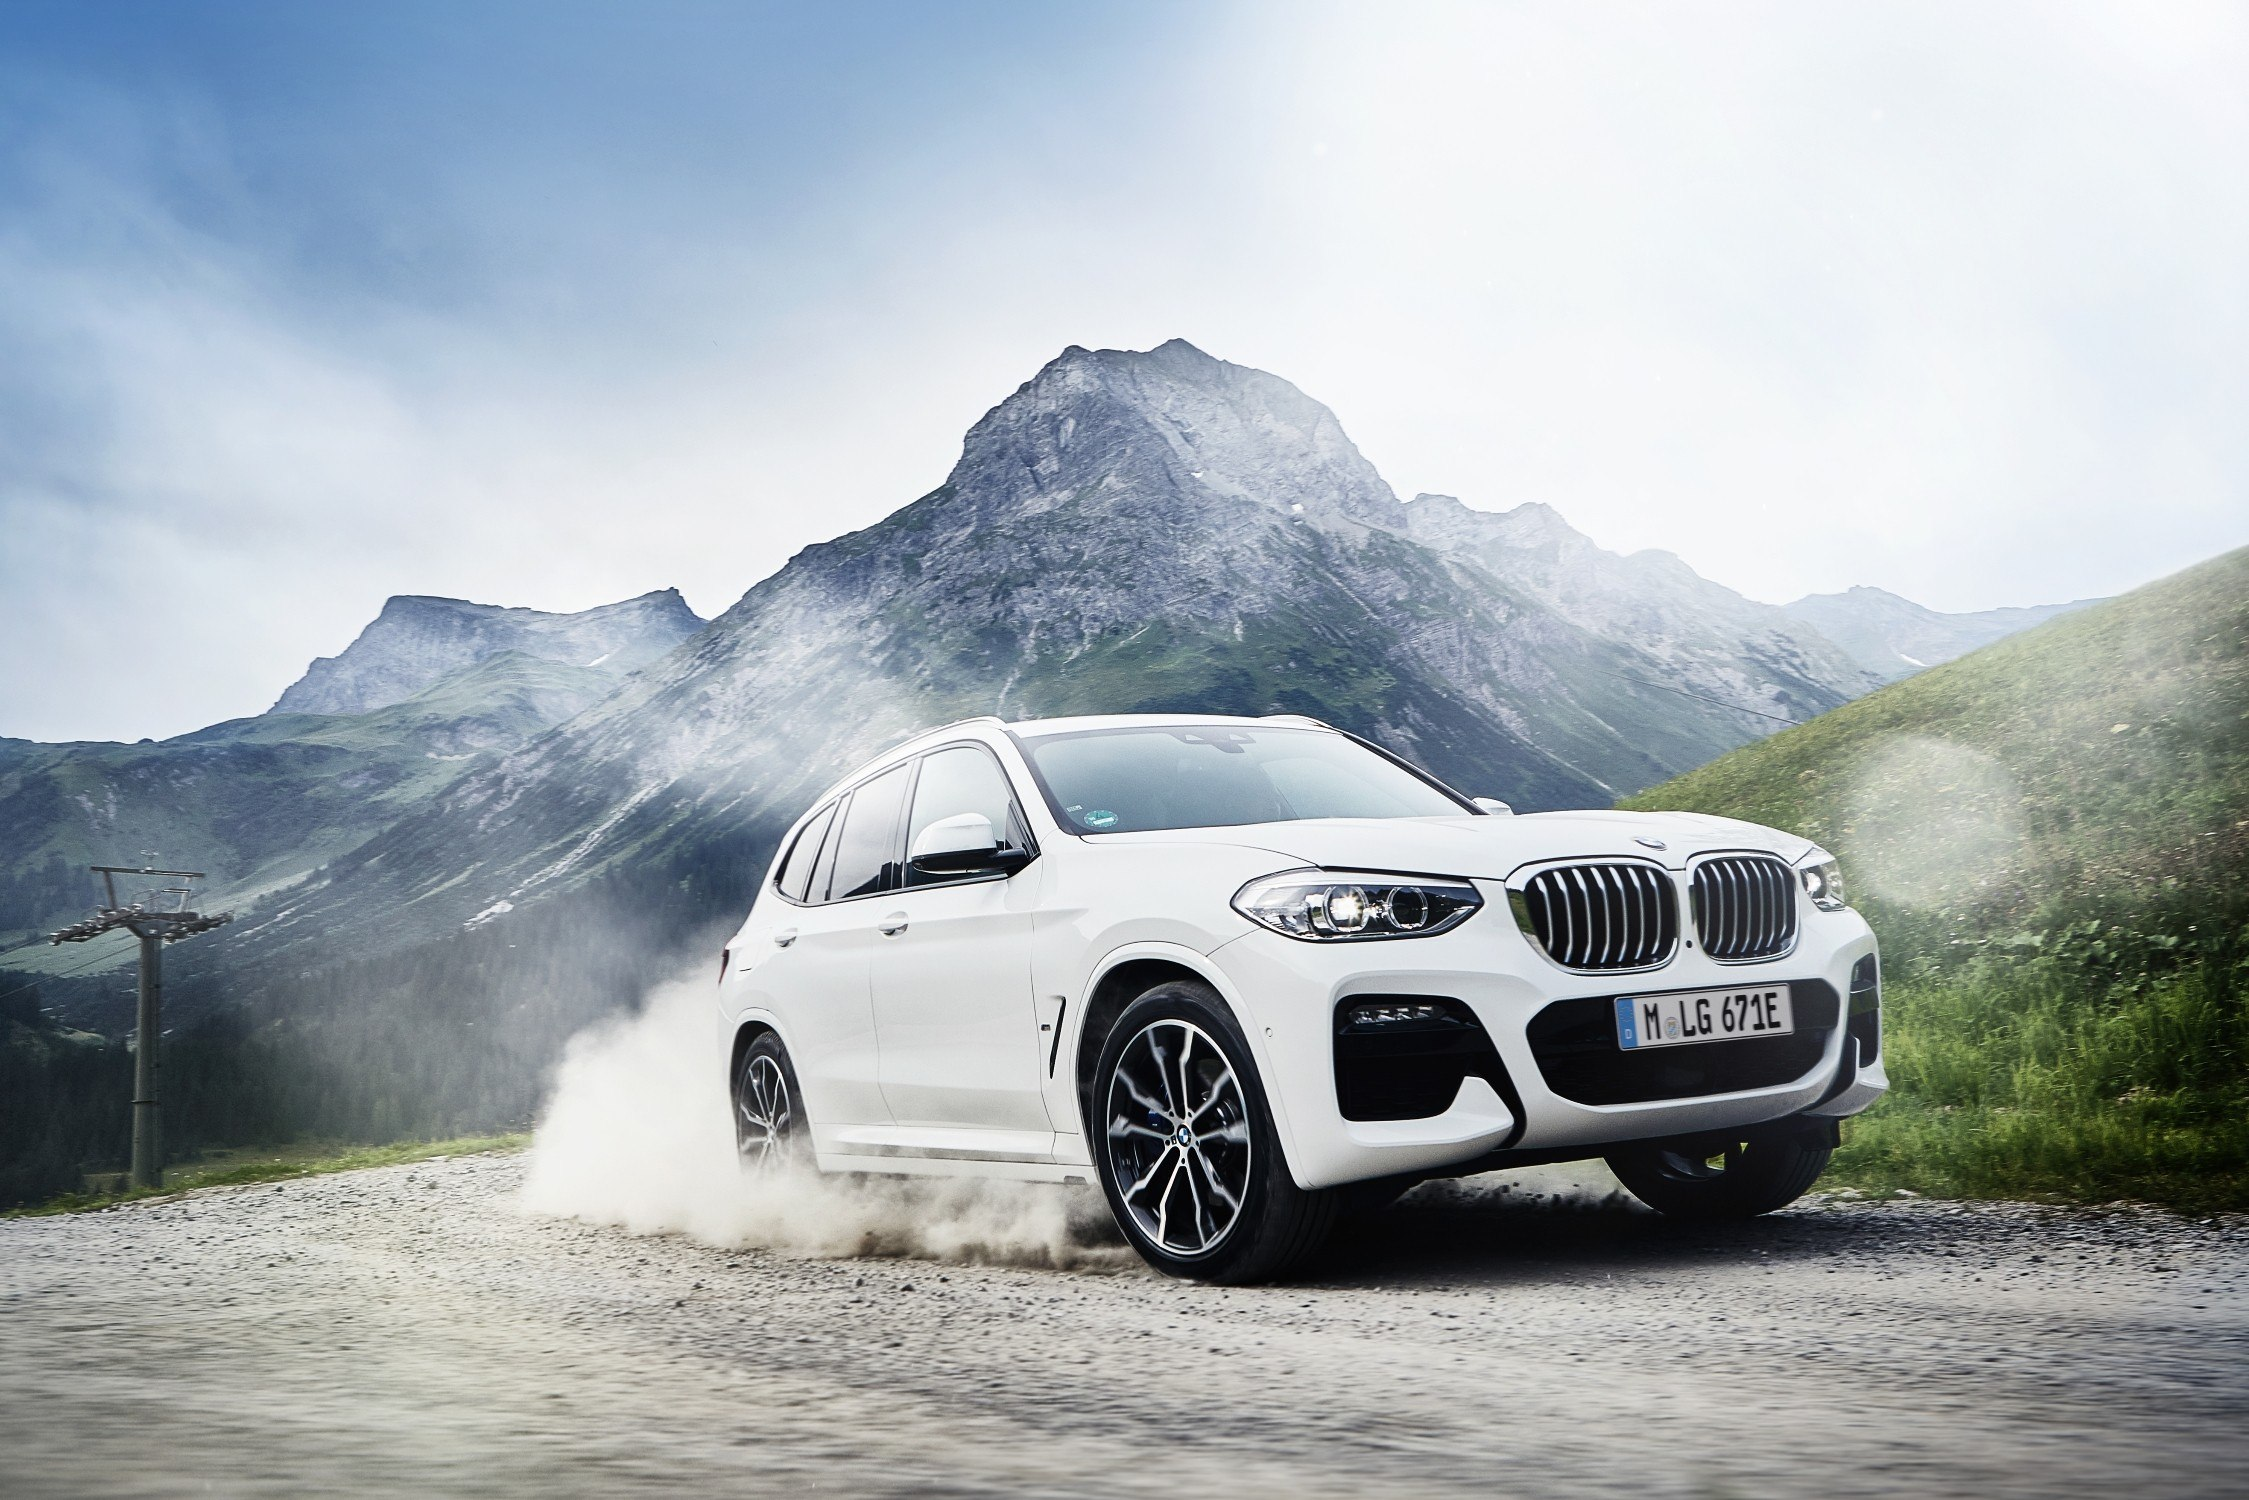 2020 BMW X3 xDrive30e Plug-in Hybrid Demo